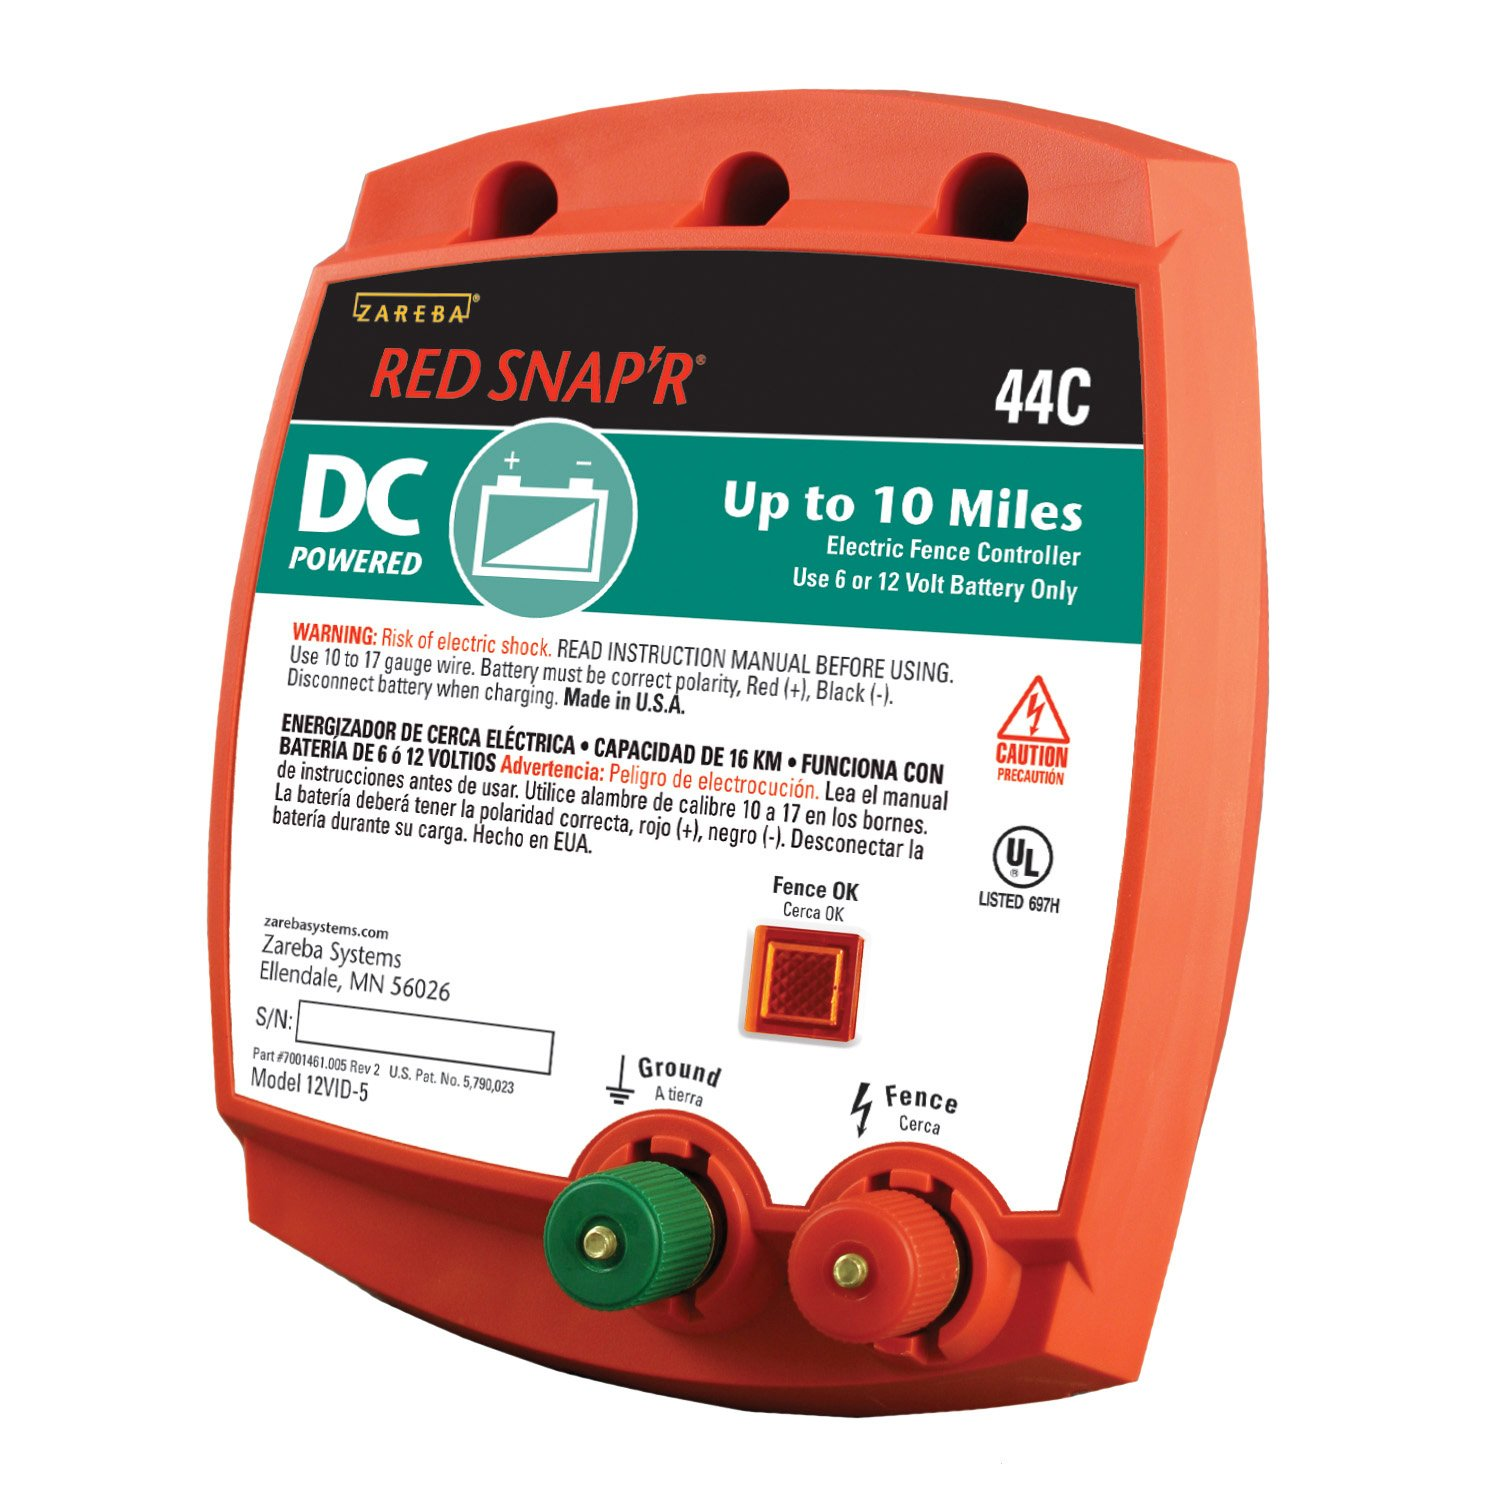 Amazon red snapr 44c battery powered solid state 10 miles amazon red snapr 44c battery powered solid state 10 miles fence controller agricultural fences garden outdoor sciox Choice Image